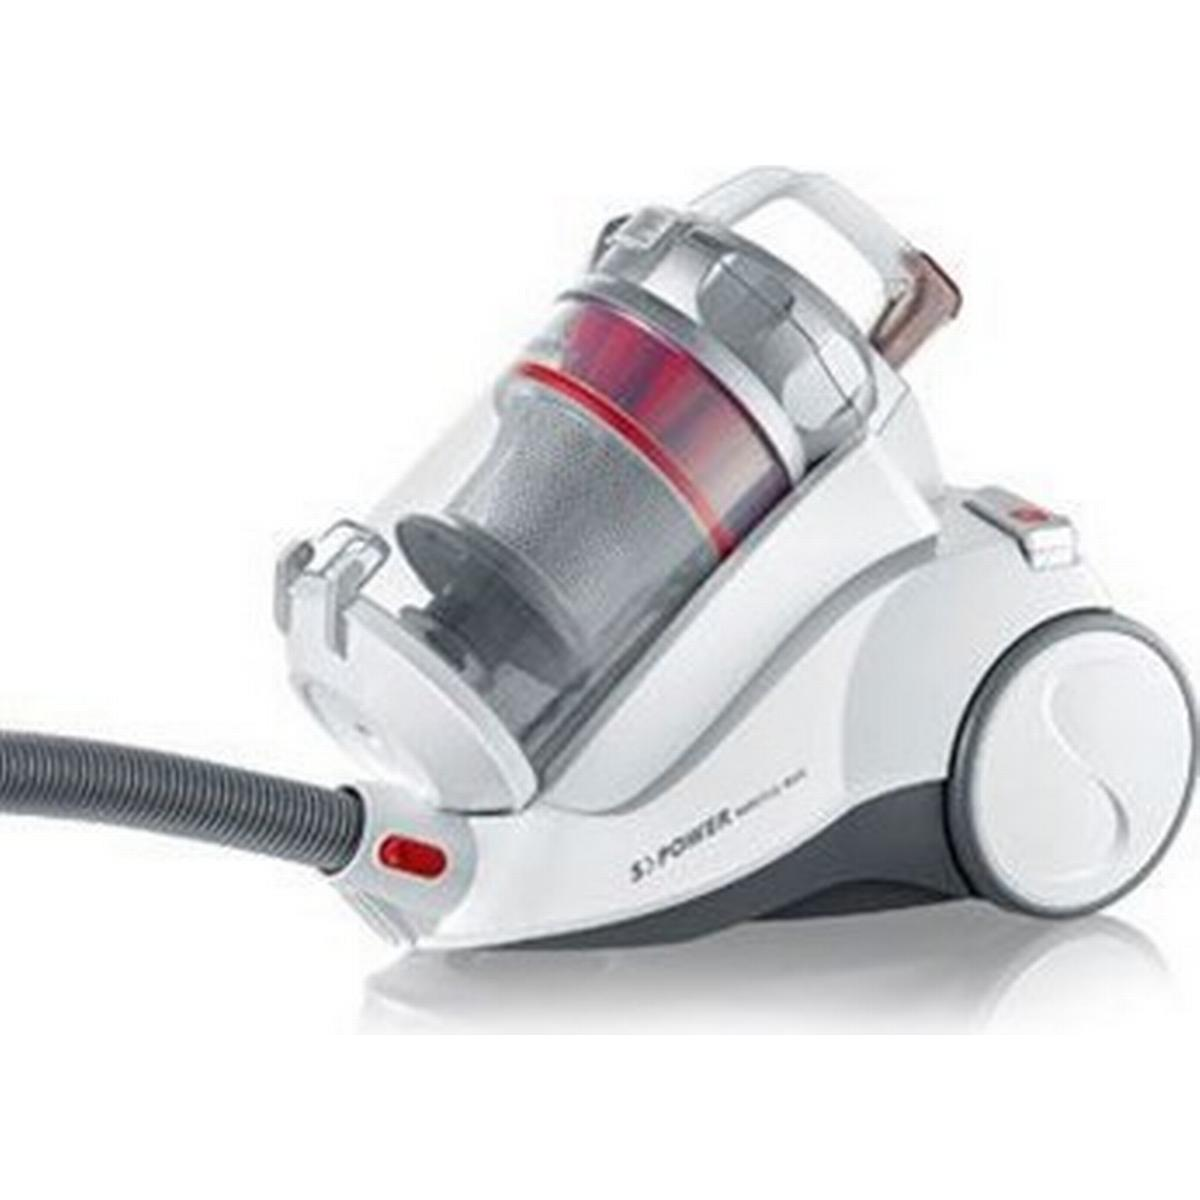 Severin My 7105 Compare Best Severin Vacuum Cleaners Prices On The Market